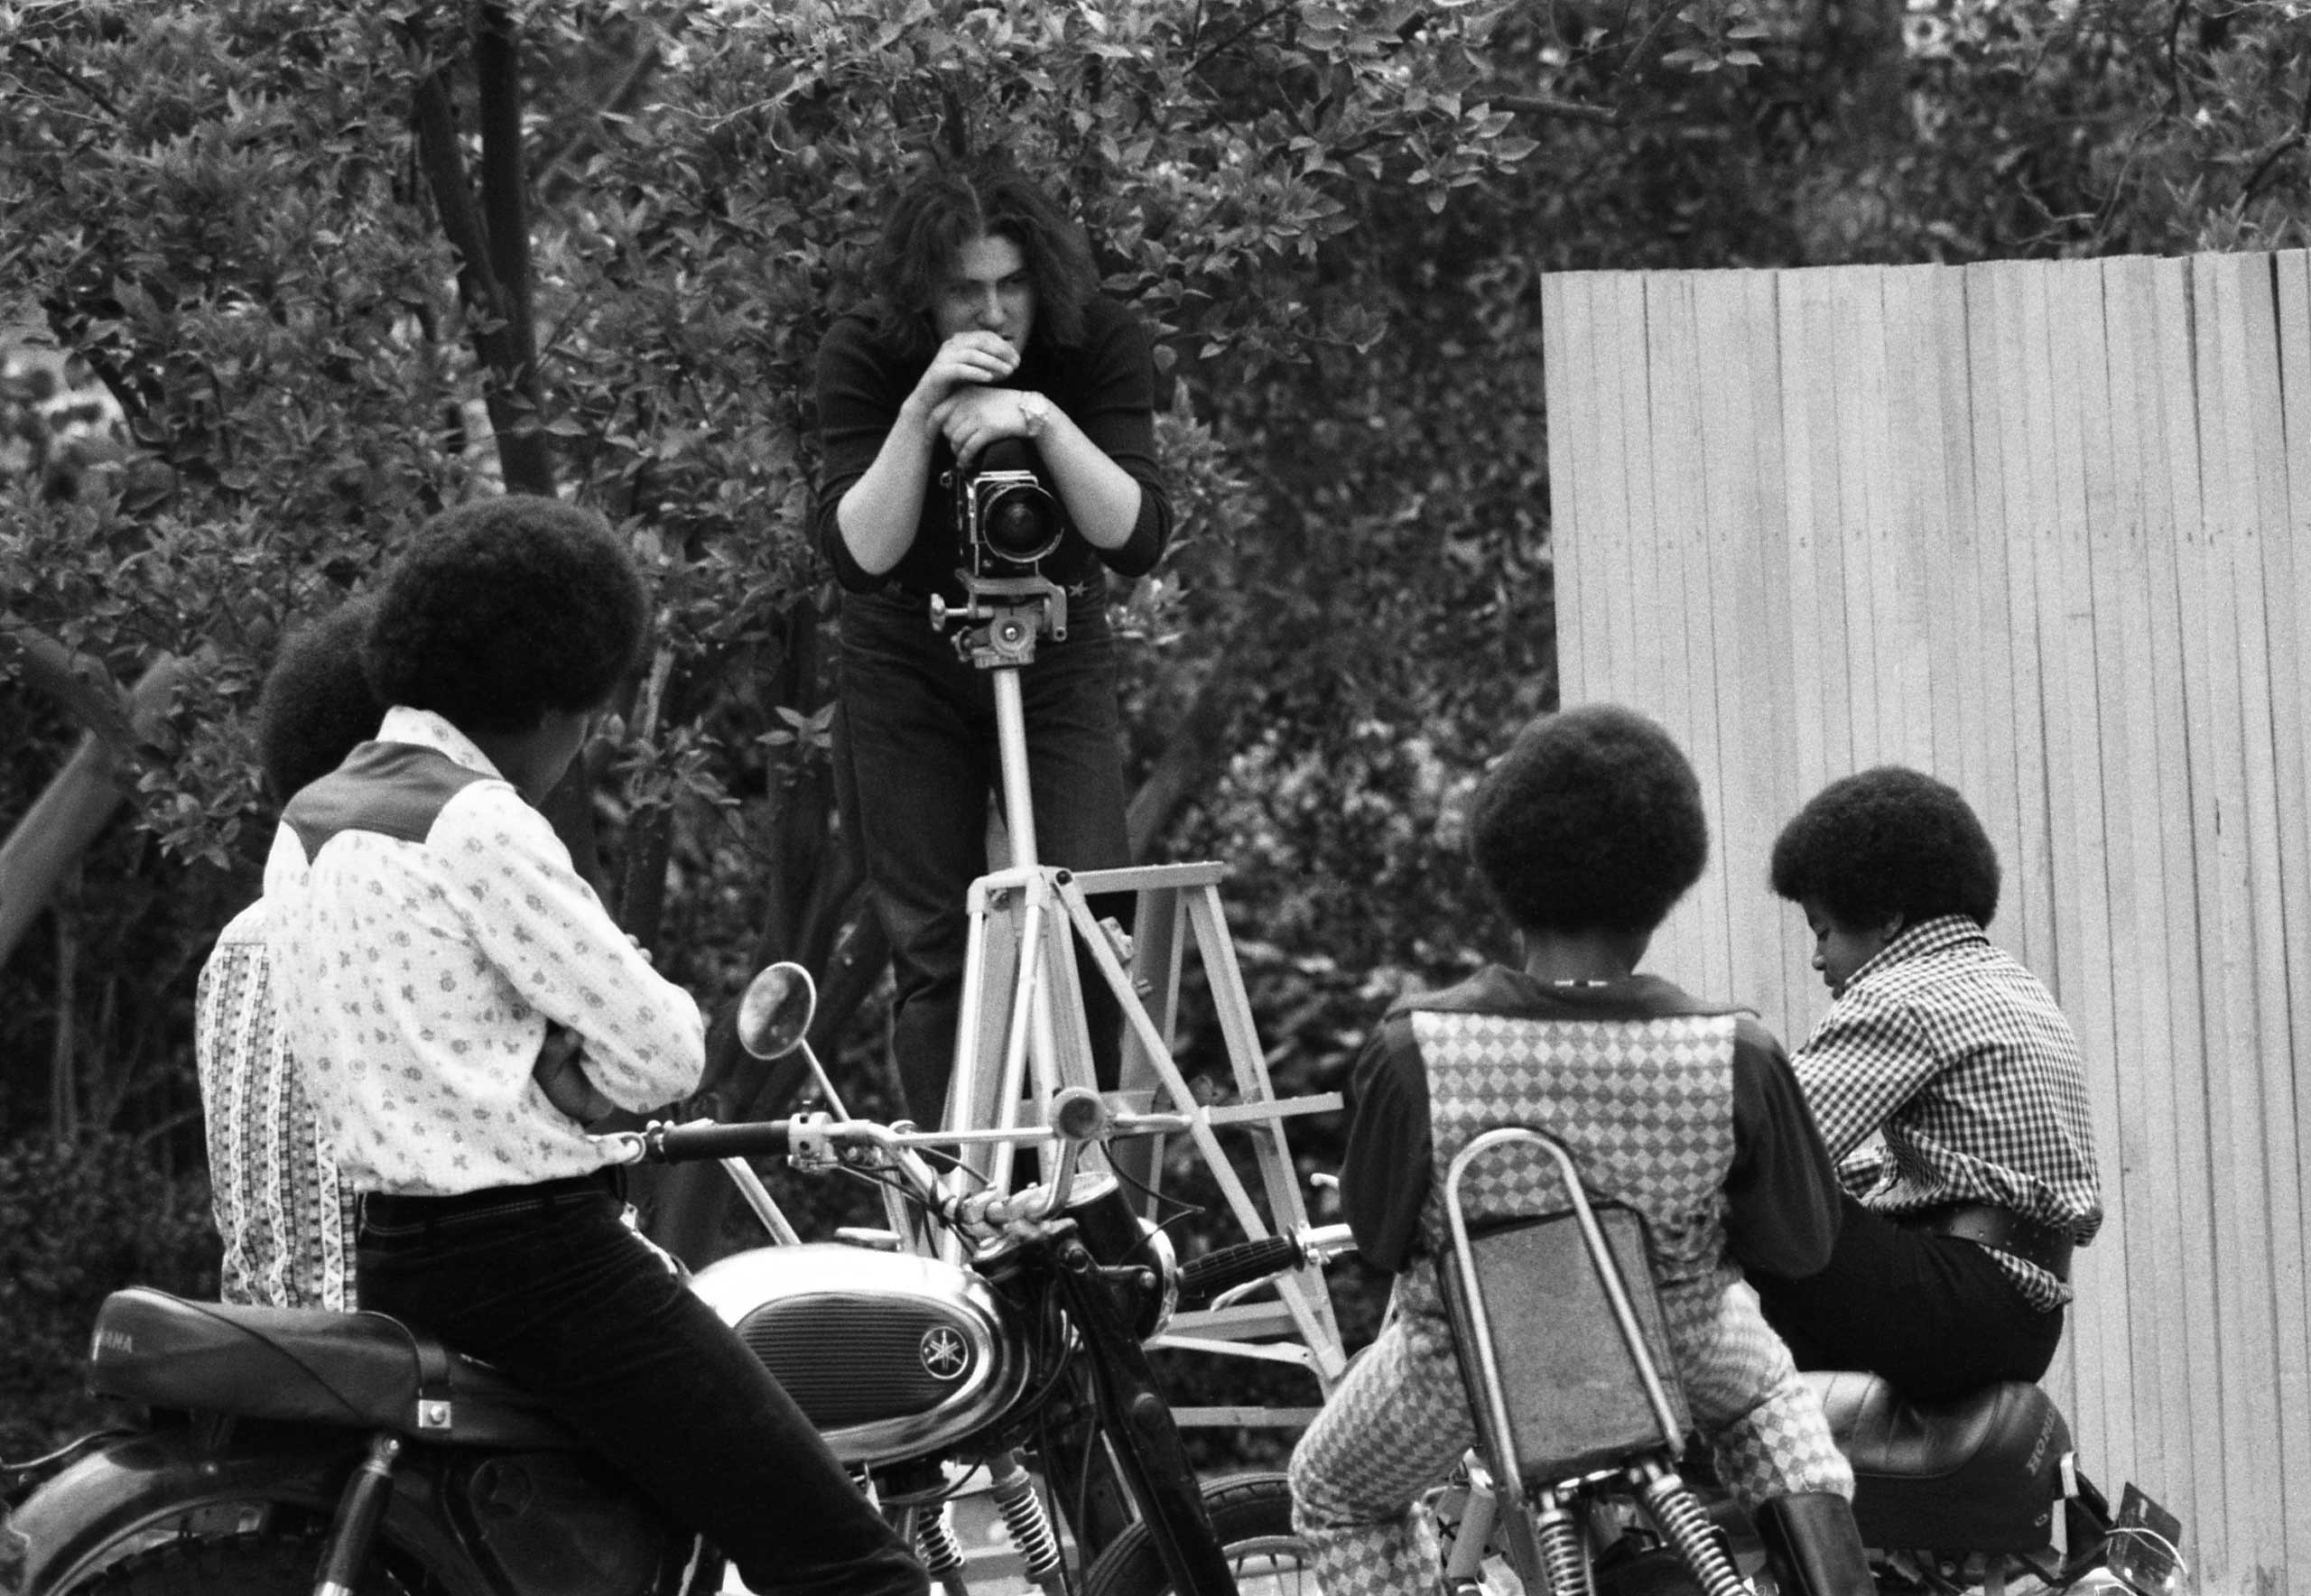 LIFE photographer John Olson sets up to shoot the Jackson 5 in their backyard in 1970.